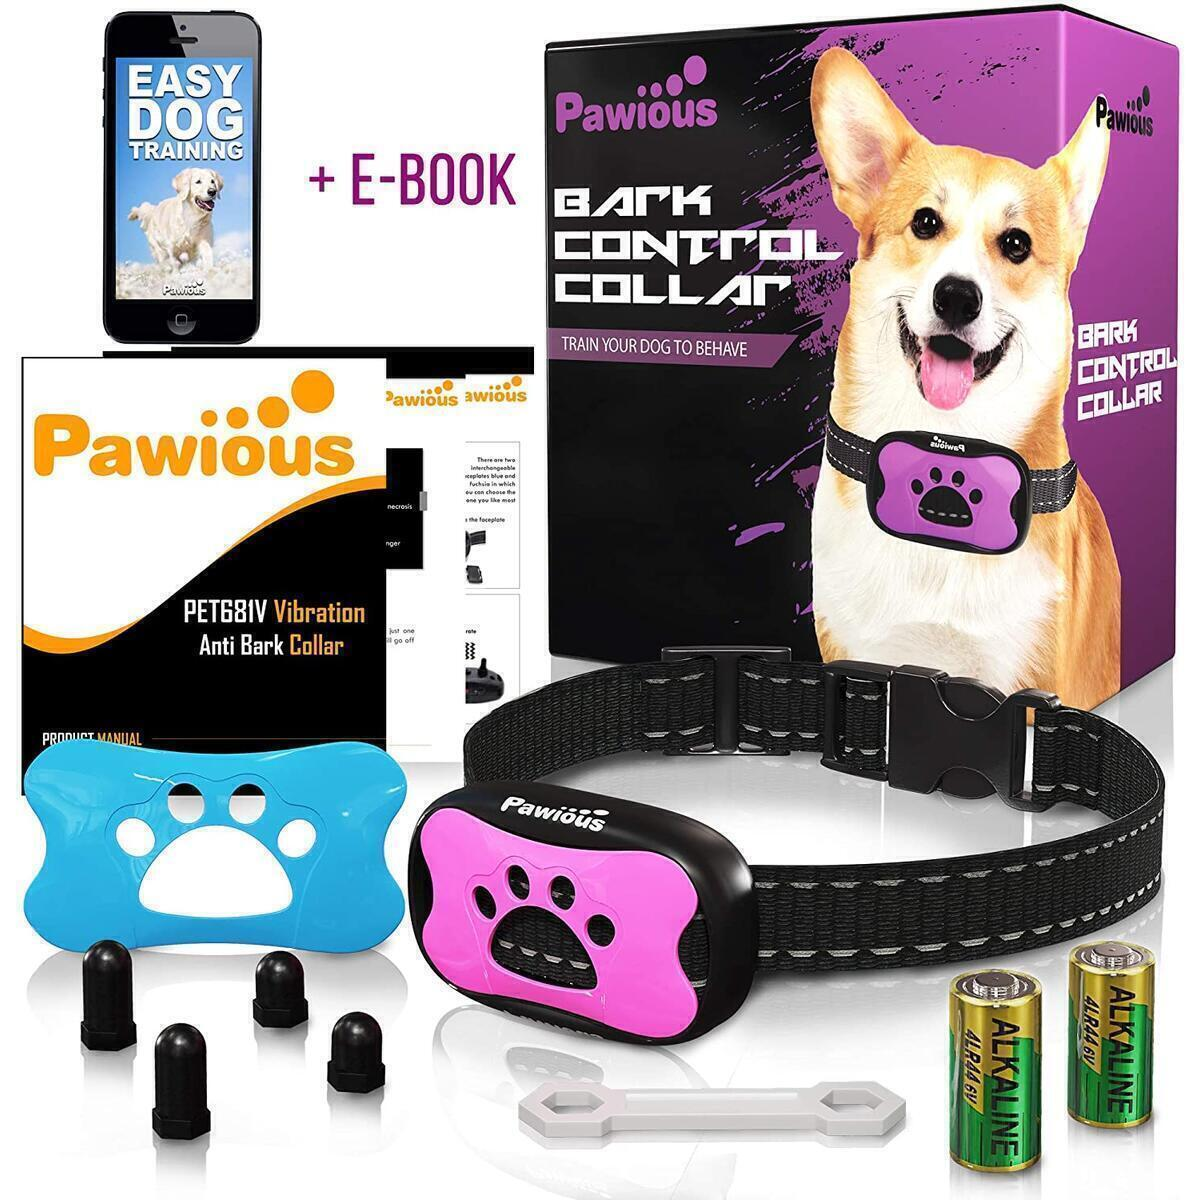 Pawious Bark Collar for Dogs [Only fuchsia color variation] - Humane No Shock, Anti Barking Collar, Sound and Vibration, 7 Sensitivity Levels - for Small Medium and Large Dogs